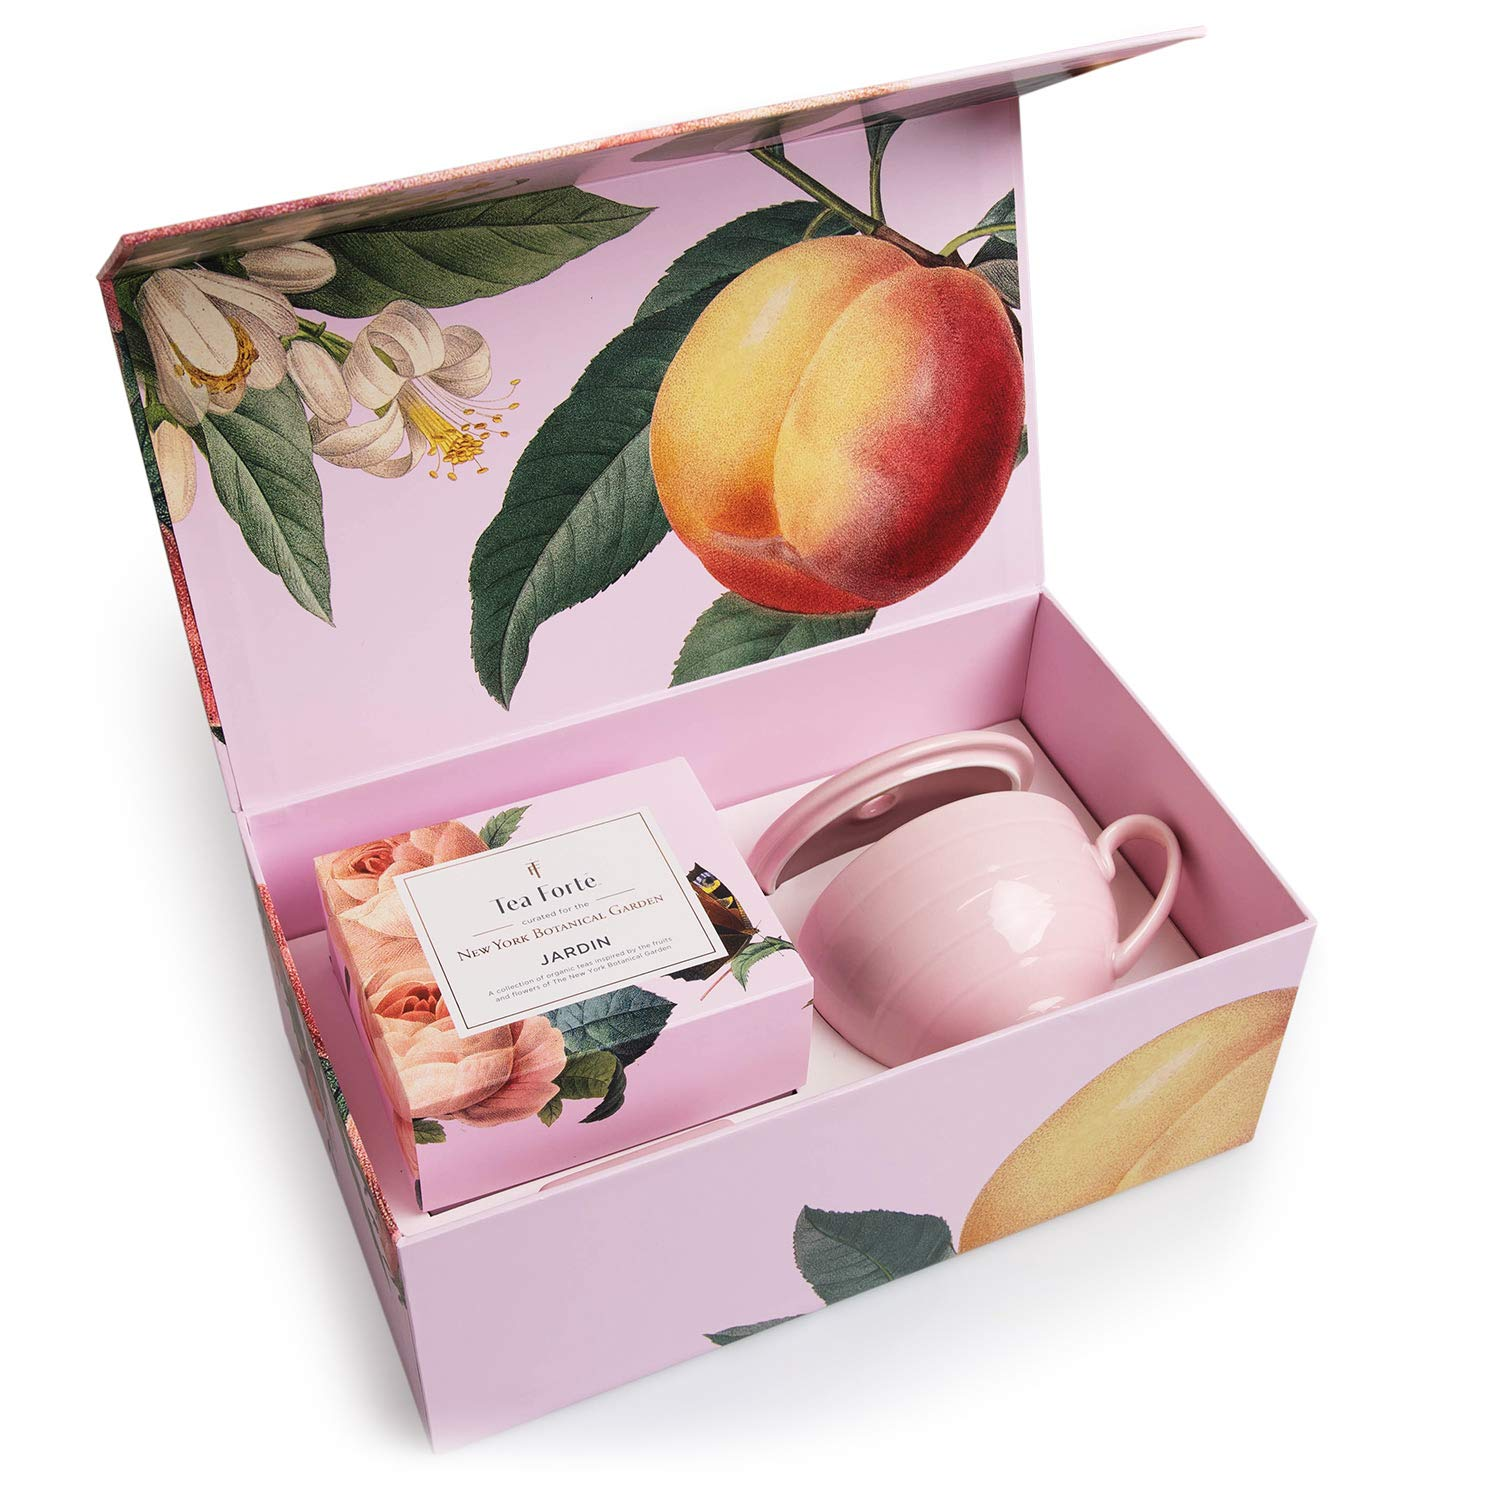 Tea Forté JARDIN Gift Set with Pink Cafe Cup, Tea Tray and 10 Handcrafted Pyramid Tea Infuser Bags